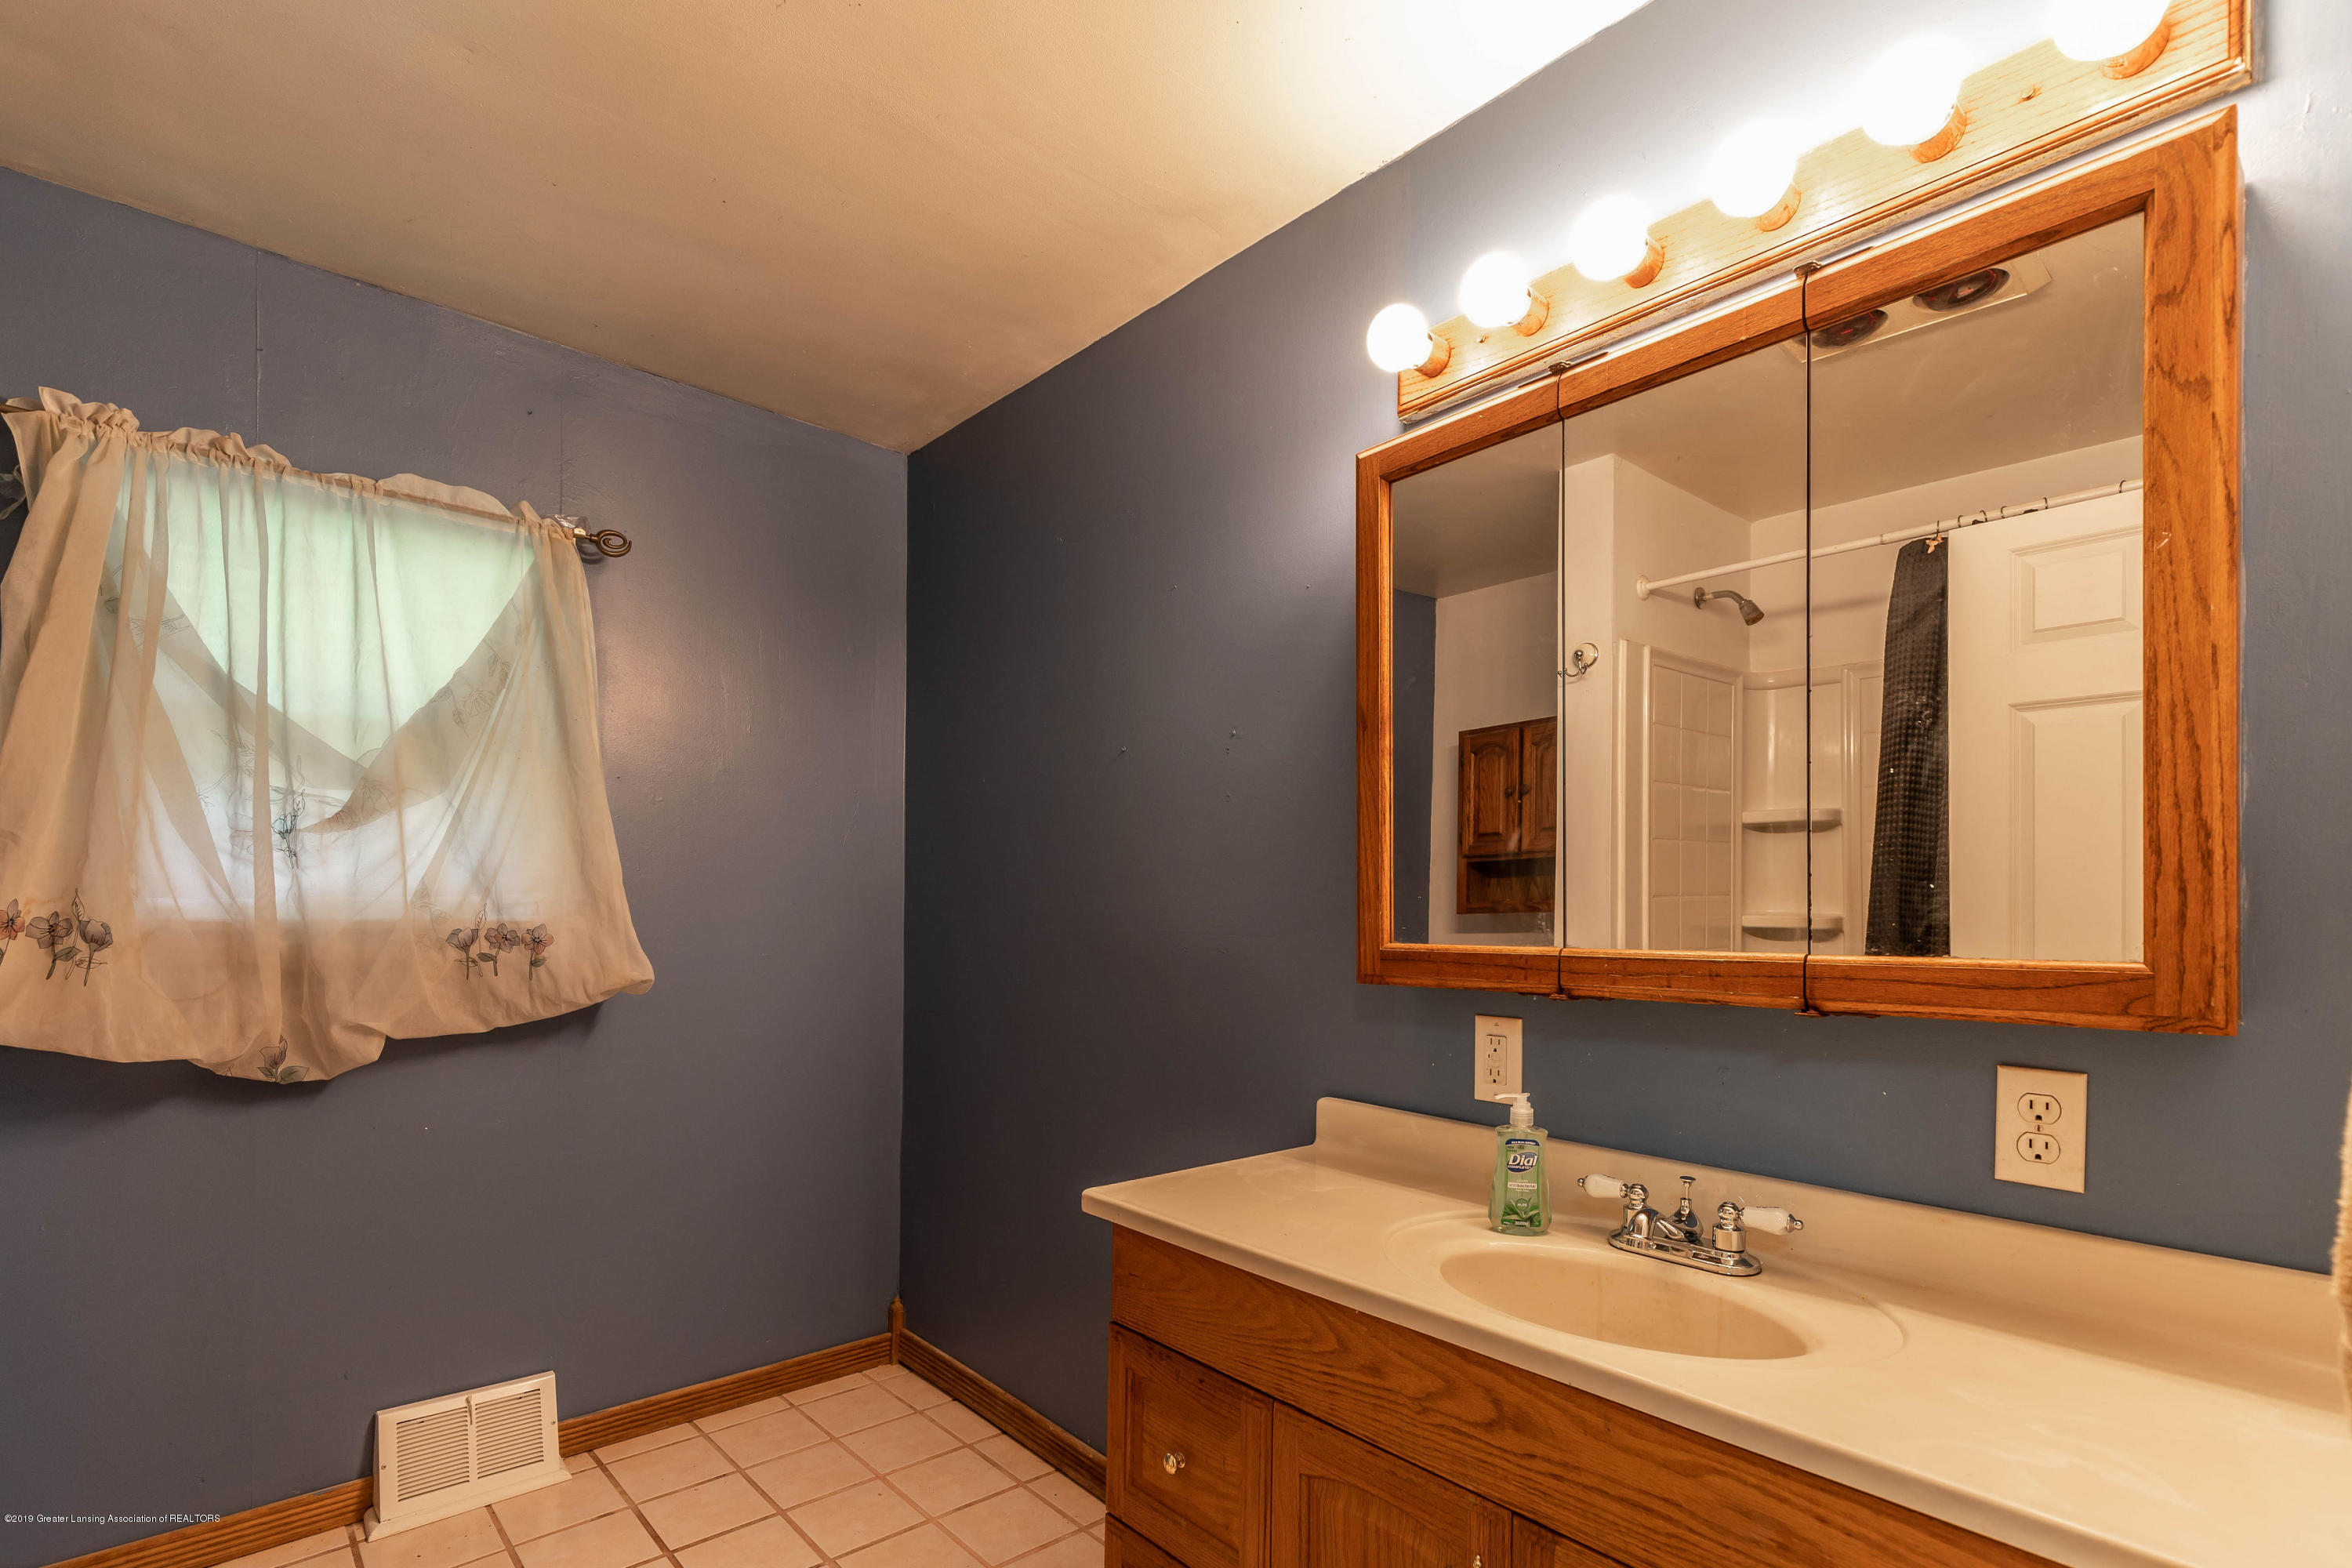 6569 S Stine Rd - bakerusbath(1of1) - 22